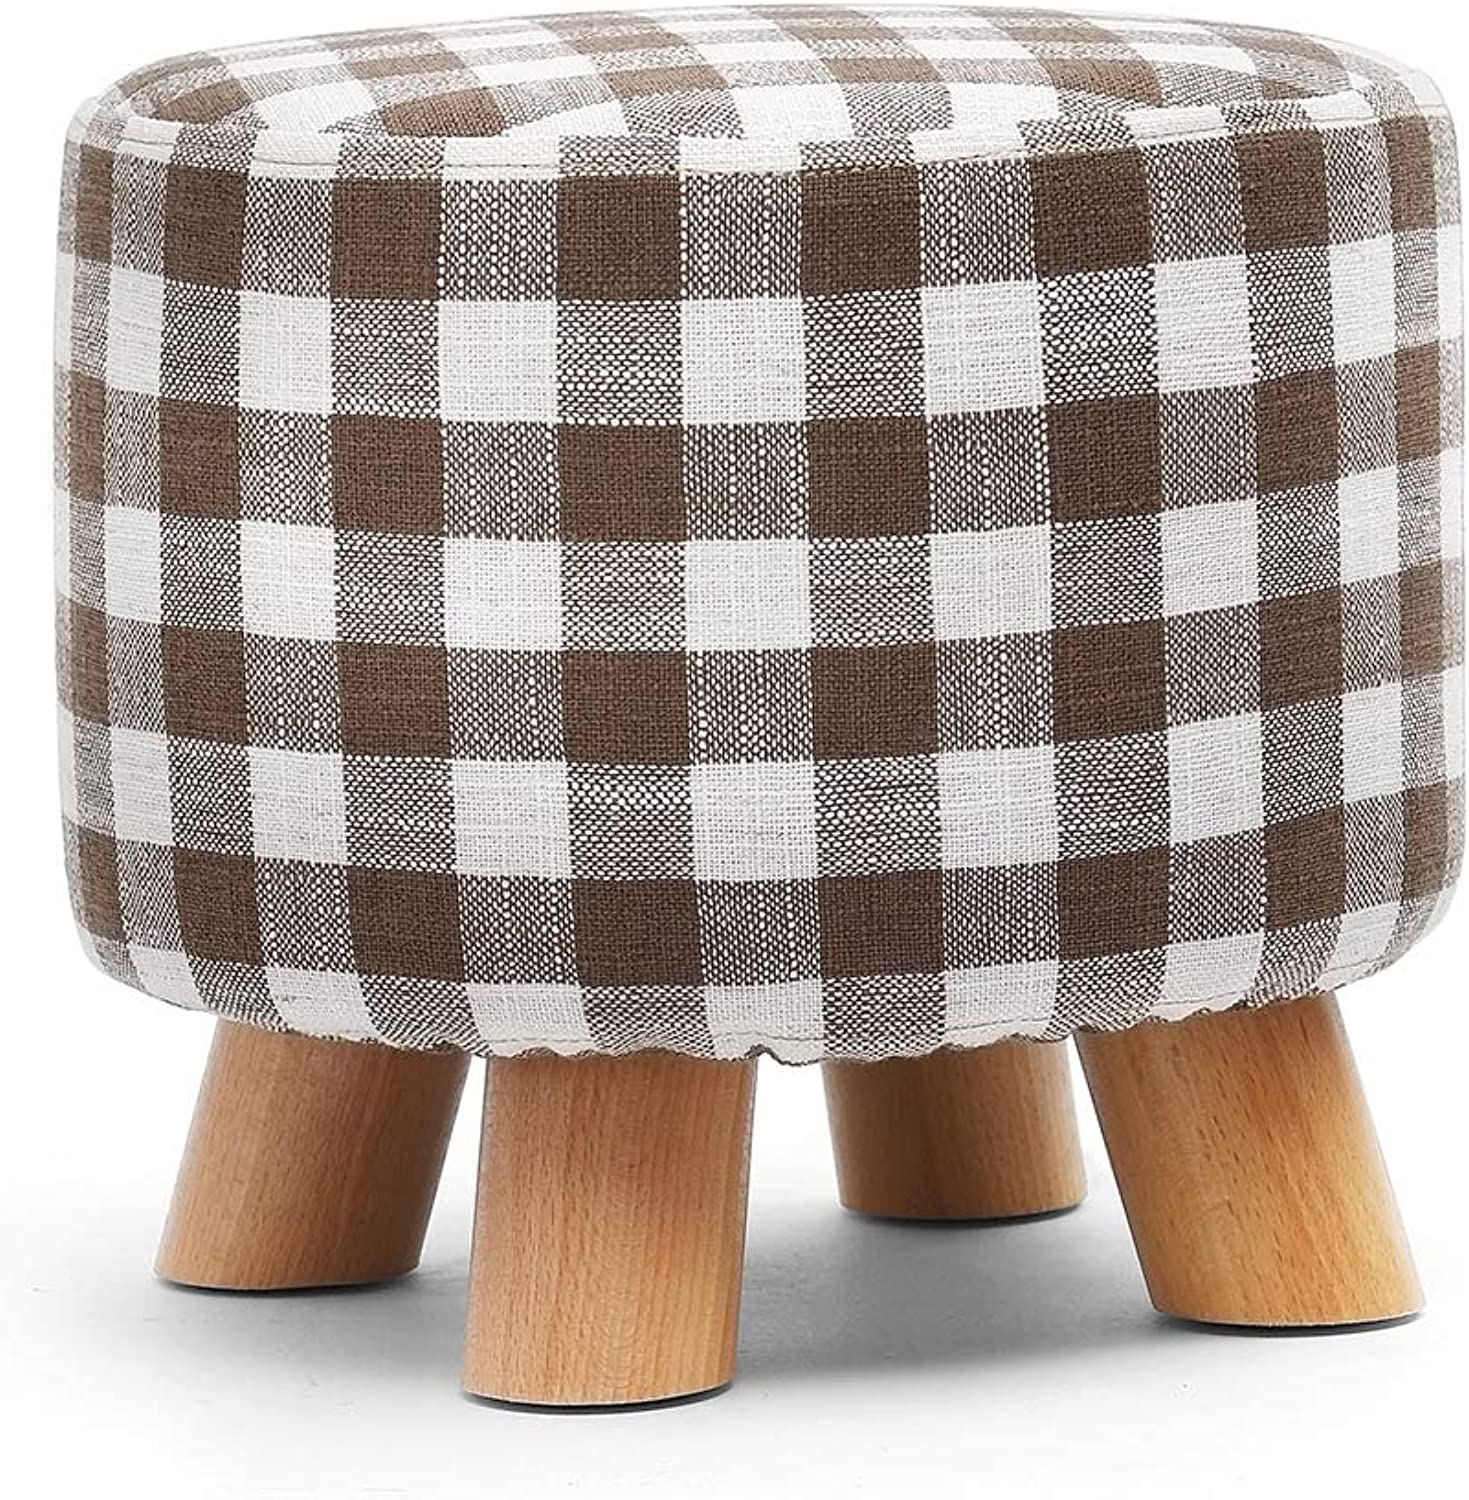 Solid Wood Stool Home Low Stool Fabric Sofa Bench Bench Stool Fashion Creative shoes Bench